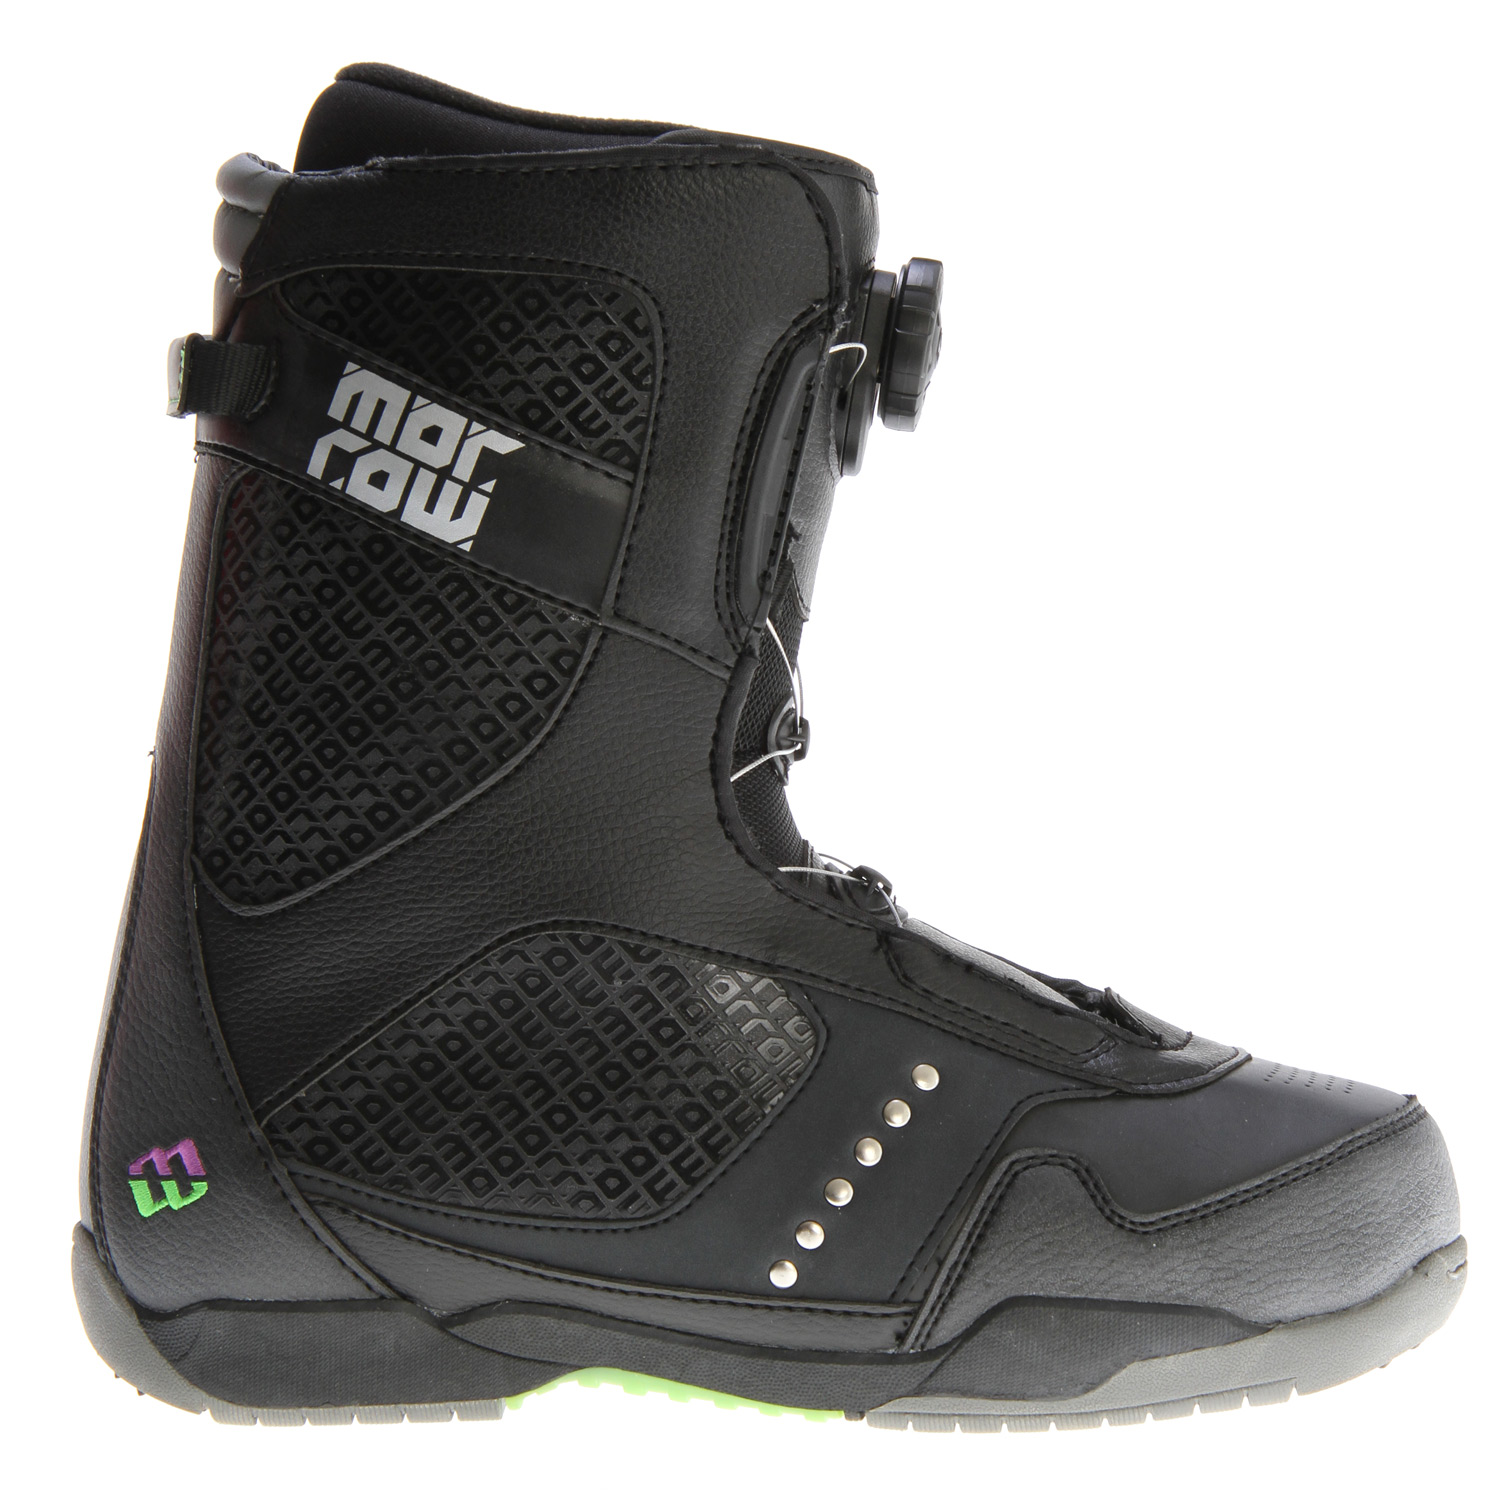 Snowboard The Kick is our high end, high performance snowboard boot. Available with Boa closure system or standard, the Kick provides the ultimate in fit and adjustment. The PowerPlus EVA Liner molds to your foot and the lace lock keeps your fit dialed in. The STC Outsole provides support and cushion while you ride.Key Features of the Morrow Kick BOA Snowboard Boots: Now available with Boa closure or lace-up STC Outsole provides support, traction & cushion PowerPlus EVA liner with lace lock BOA reel closure system provides ultimate fit and easy adjustment Synthetic leather body construction with embroidery detailing Multi-zone ankle flex points - $79.95